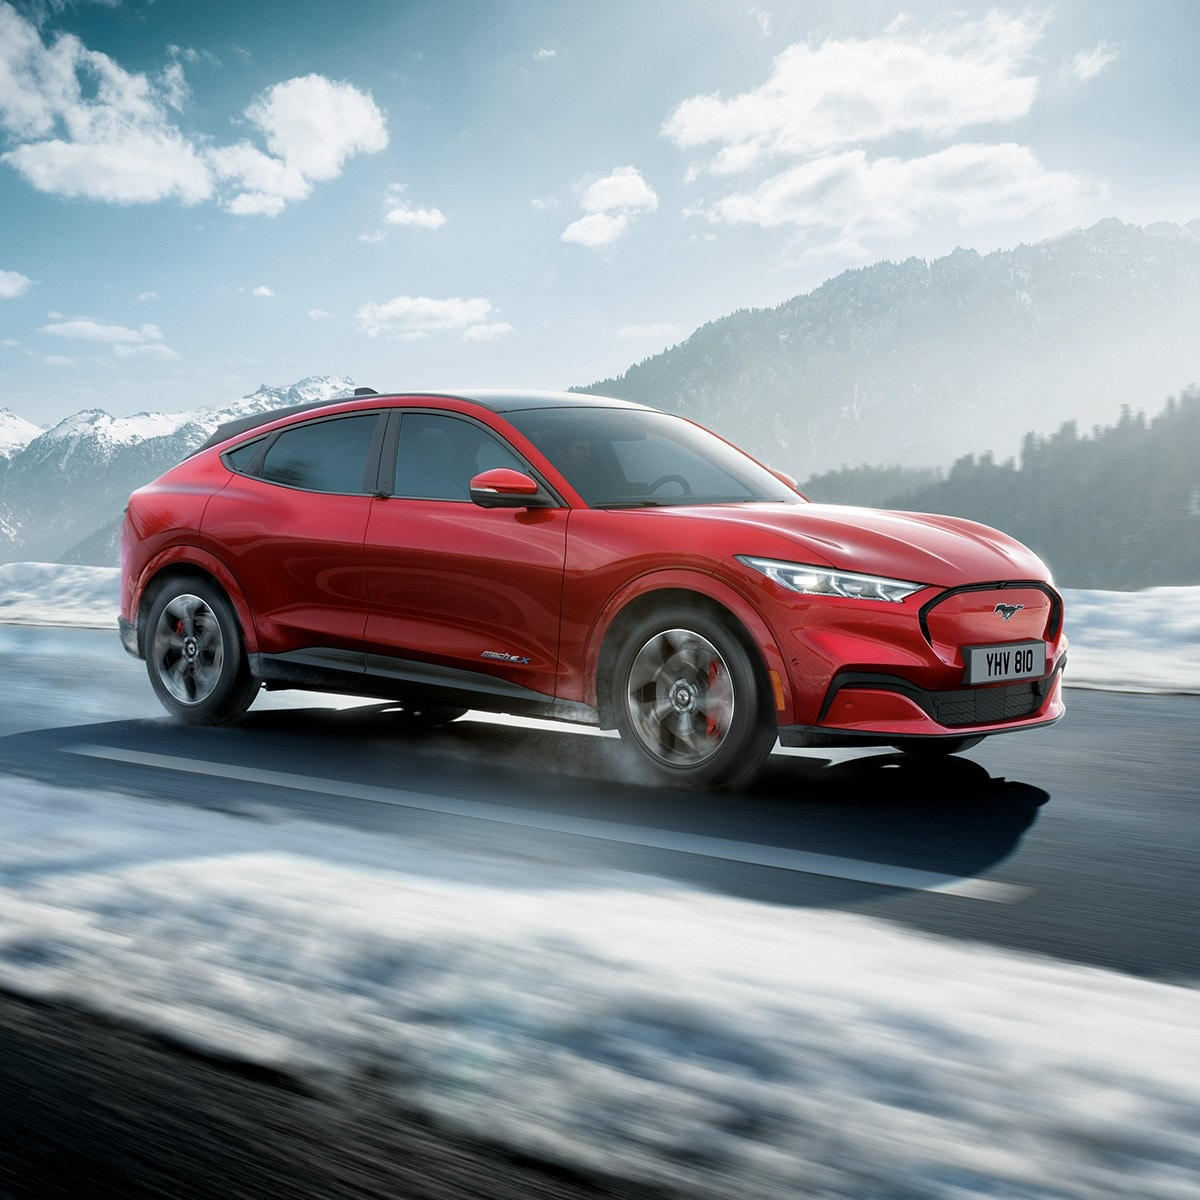 All-New Ford Mustang Mach-E driving through snowy mountains